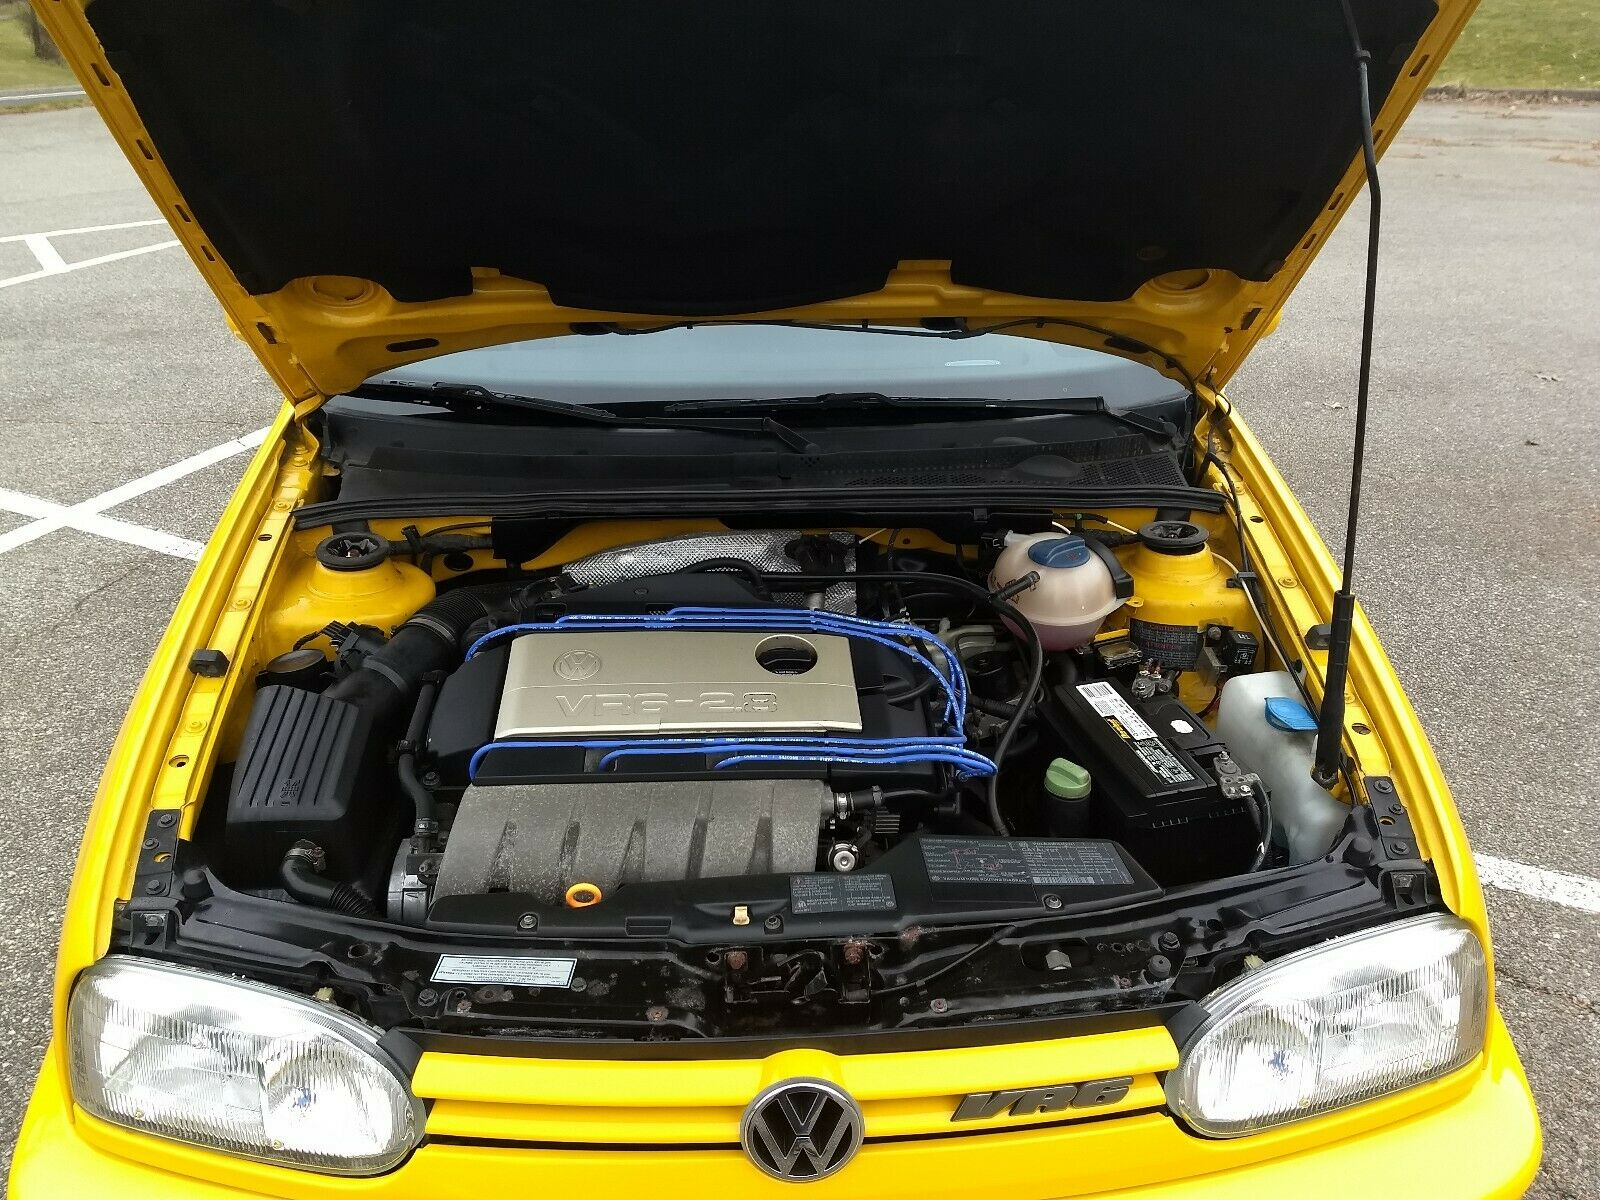 hight resolution of up for sale is my 1998 gti vr6 it was sold new by sendell volkswagen in greensburg pennsylvania and is finished in ginster yellow over black leather